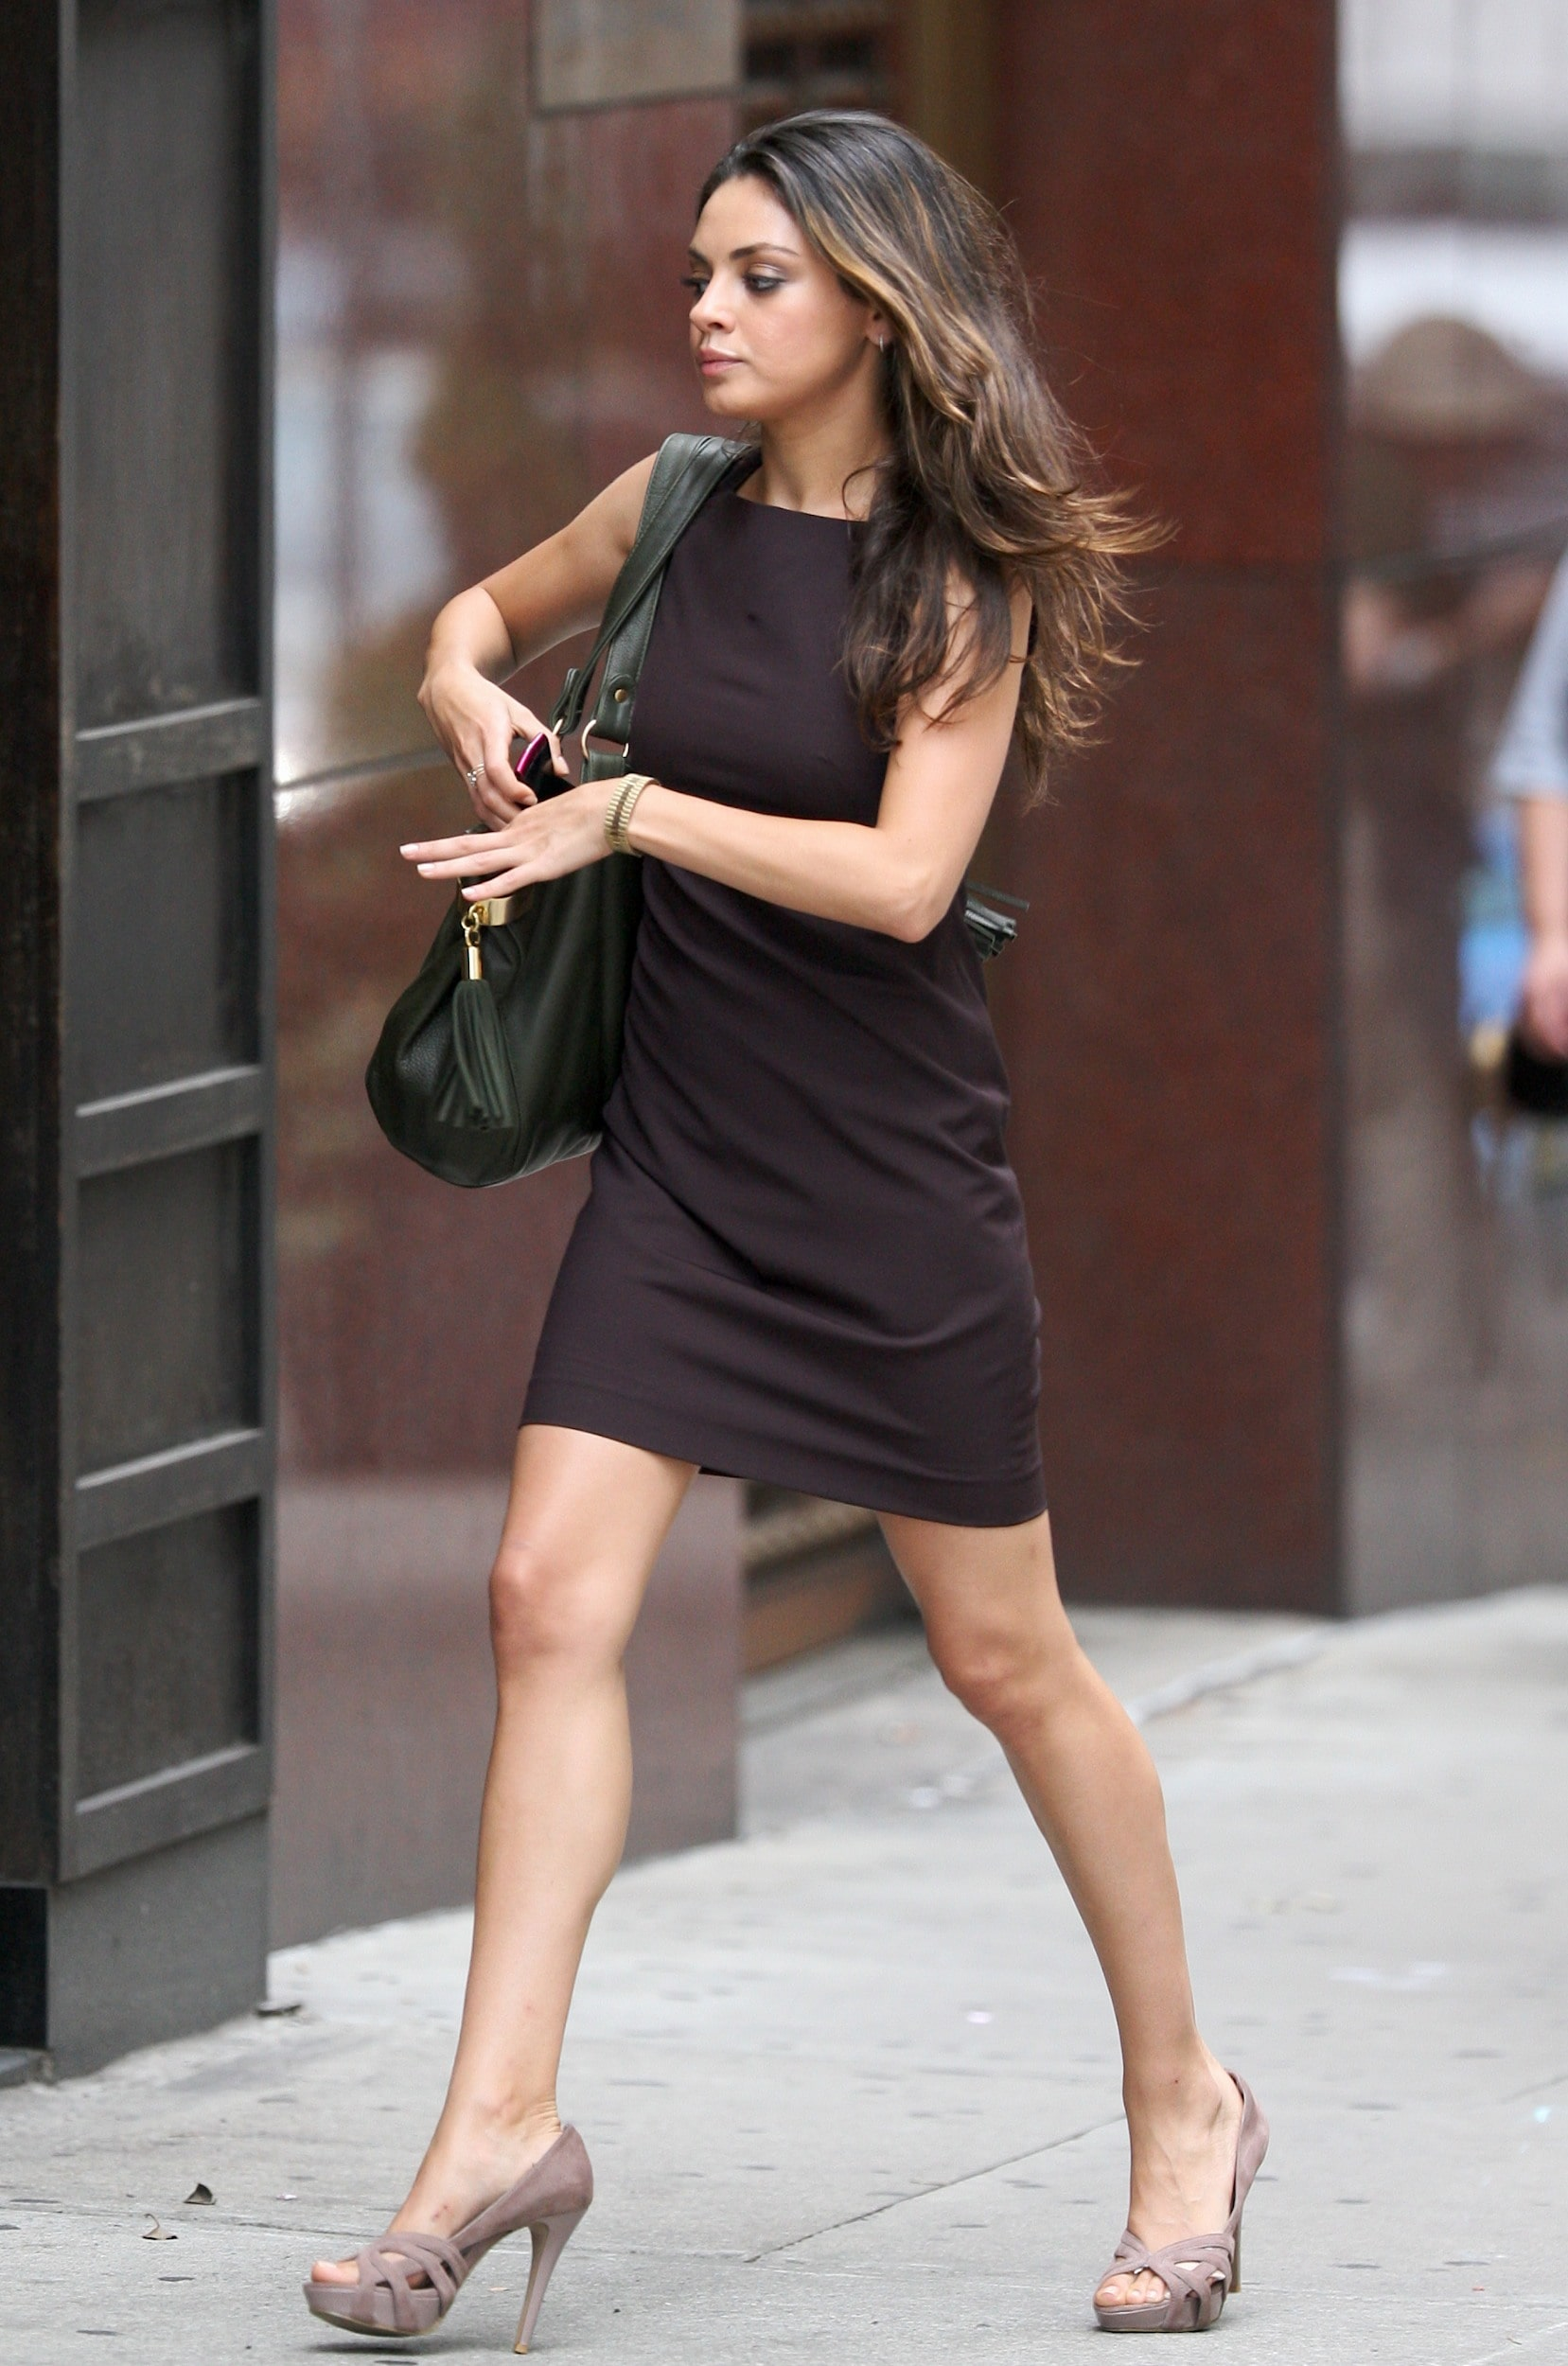 49 Hottest Mila Kunis Sexy Feet Pictures Are Epic As Hell-7535